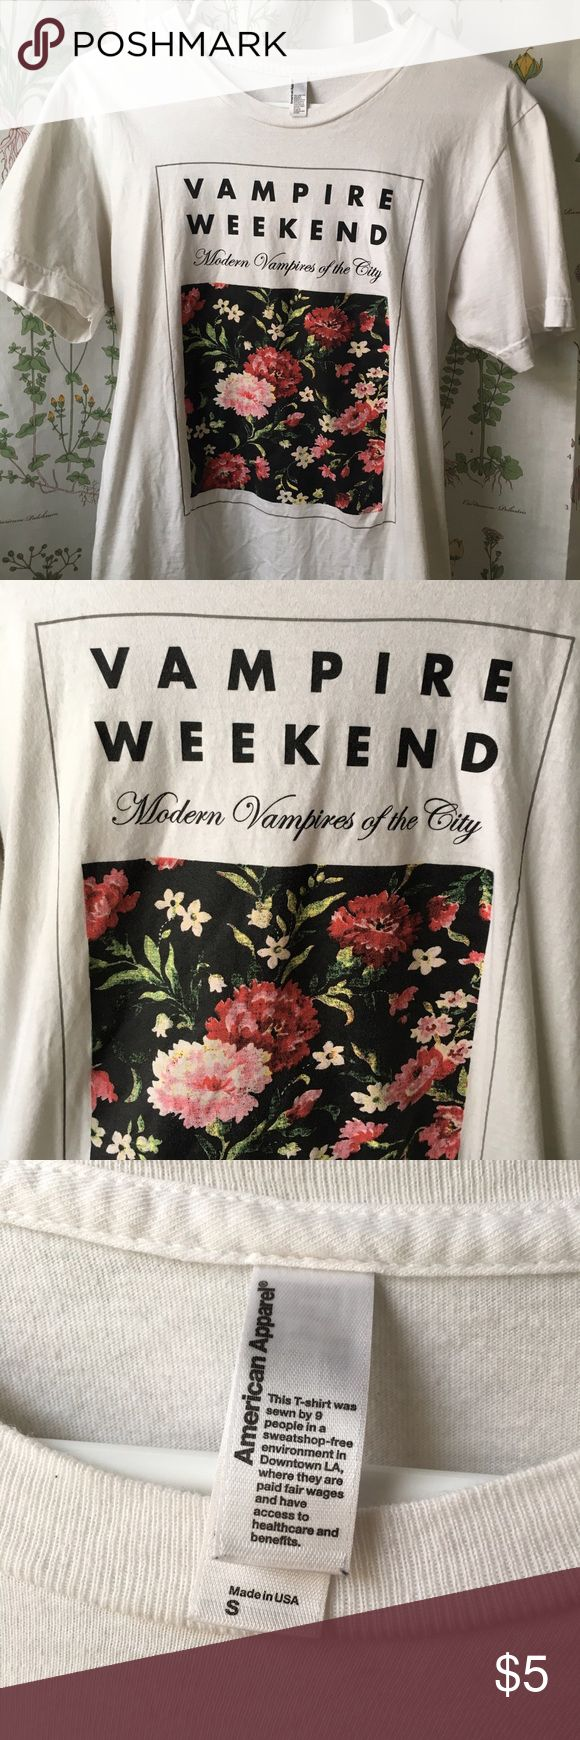 Vampire Weekend Tee Size small tour t shirt. printed on american apparel tee. worn maybe twice so it's still in great condition 👍🏼from a smoke free home. no trades please. listed as uo for views. Urban Outfitters Tops Tees - Short Sleeve